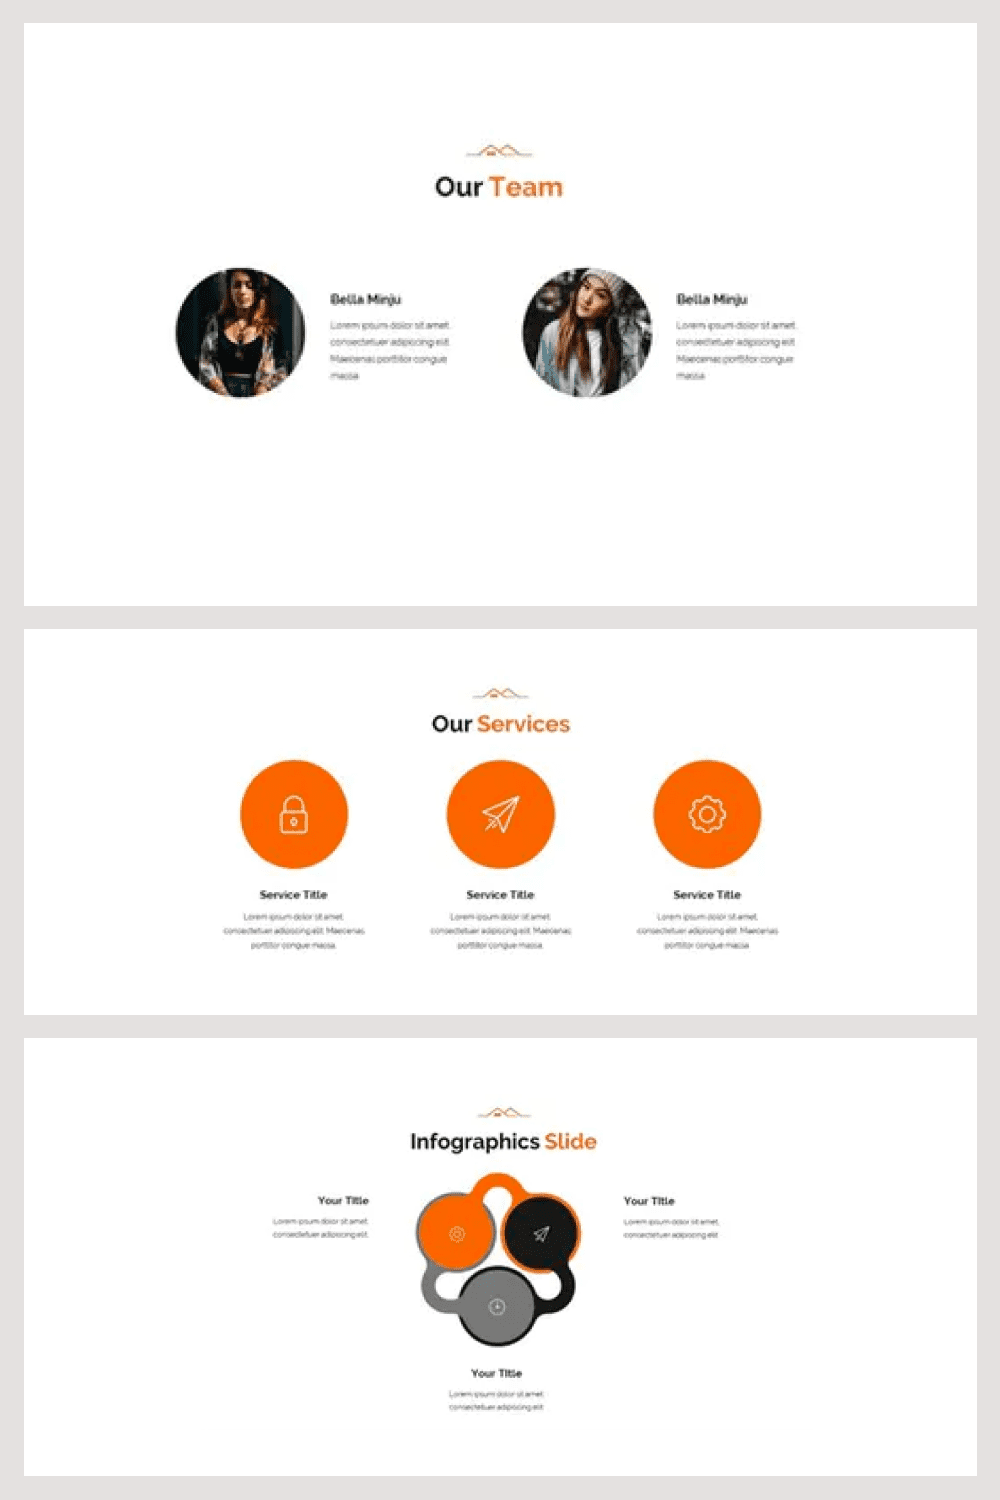 A very simple presentation of information, which makes a template for any audience.